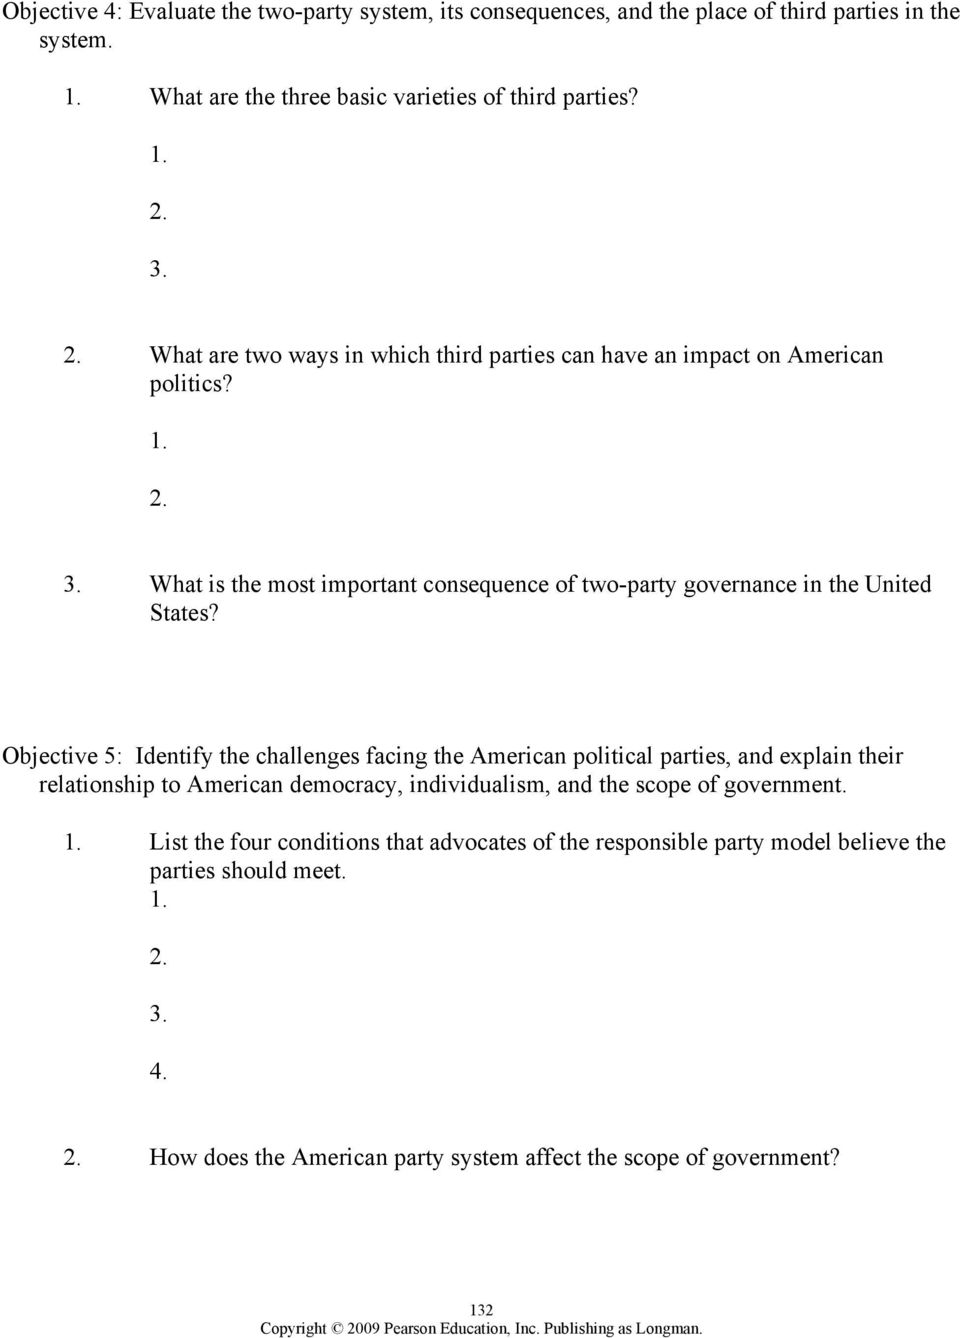 worksheet The Populist Movement The Value Of Third Parties Worksheet Answers chapter 8 political parties outline pdf what is the most important consequence of two party governance in united states